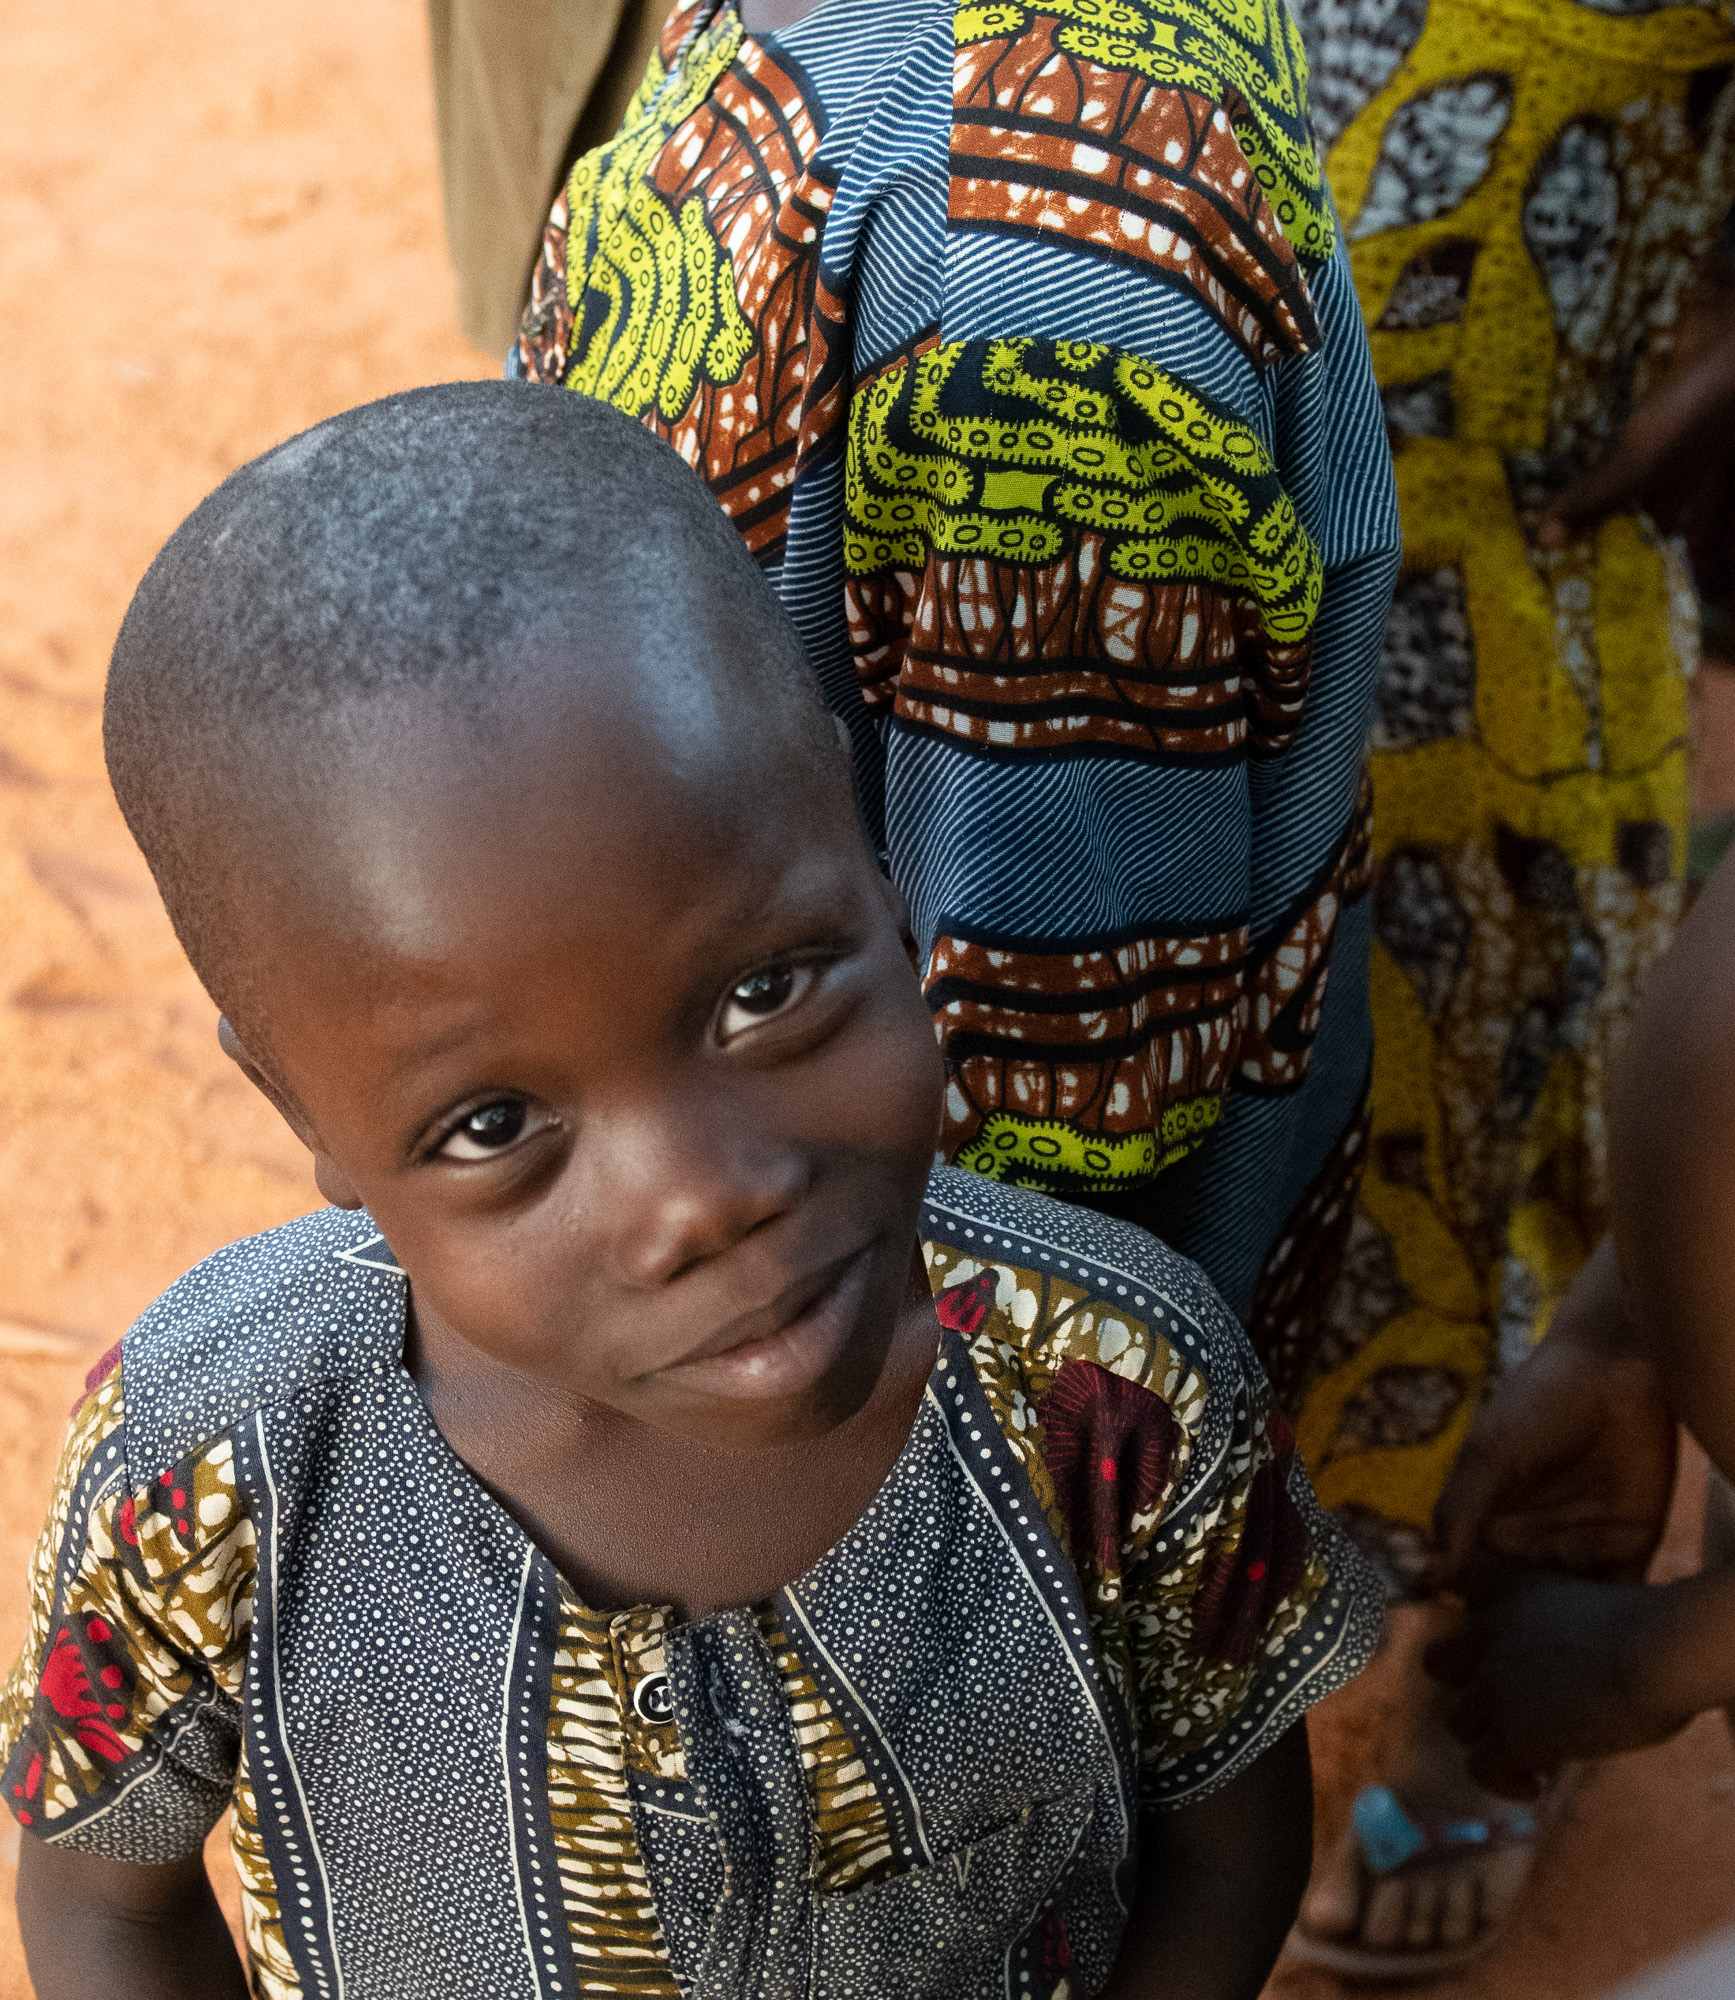 Village Child. Cove, Benin